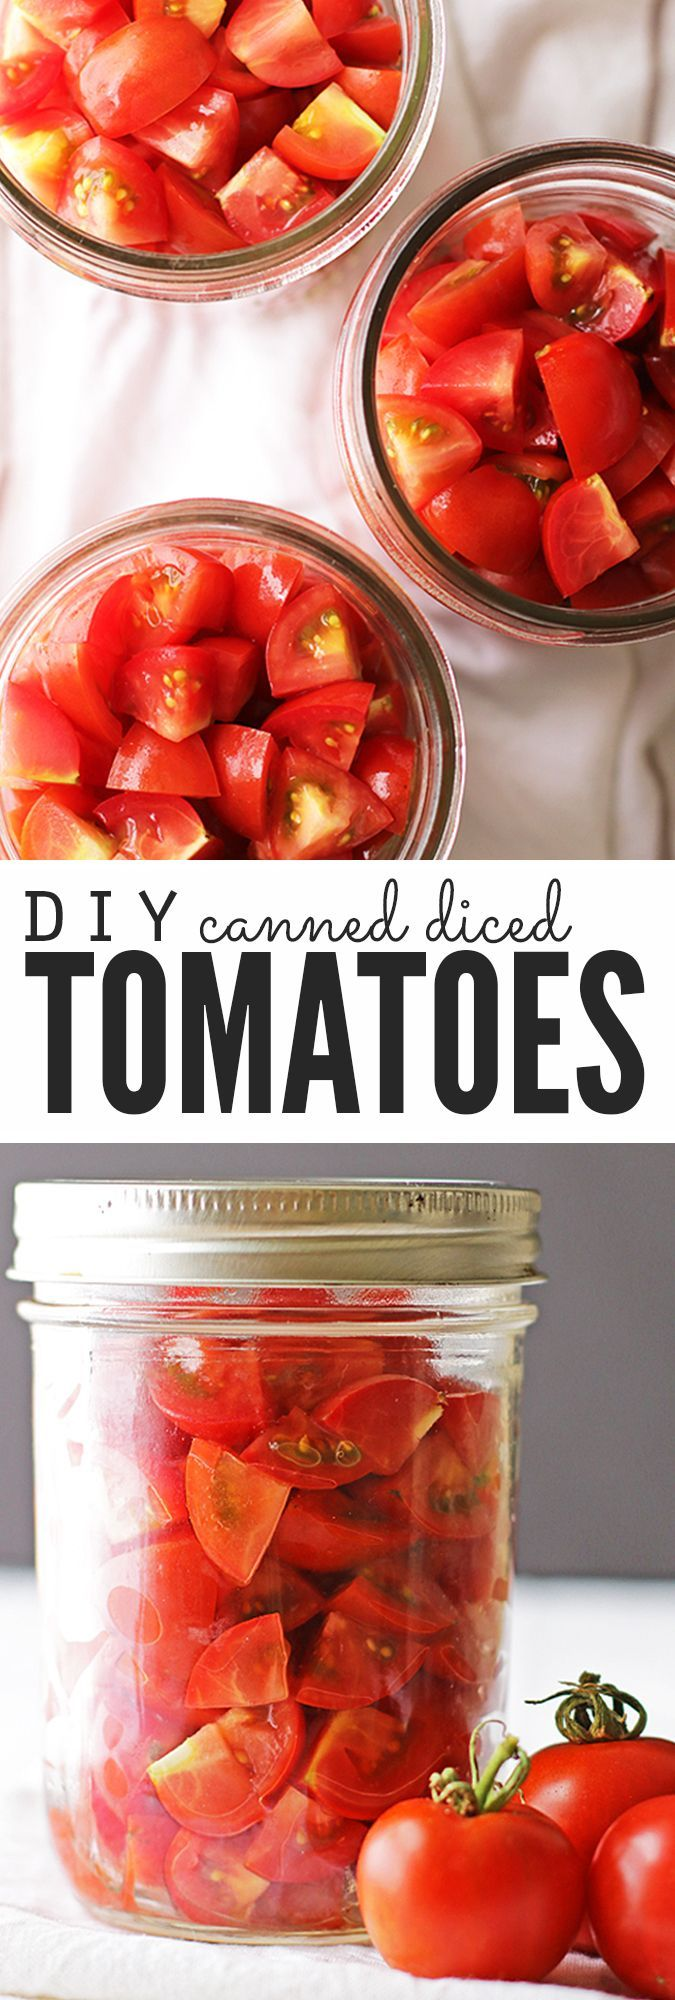 Make your own homemade canned diced tomatoes with this easy recipe and tutorial! It walks you through step-by-step canning tomatoes with the water bath method, so you don't need a pressure canner or any other special equipment. Plus homemade canned diced tomatoes taste way better than store-bought AND you won't have to buy any come winter! :: DontWastetheCrumbs.com